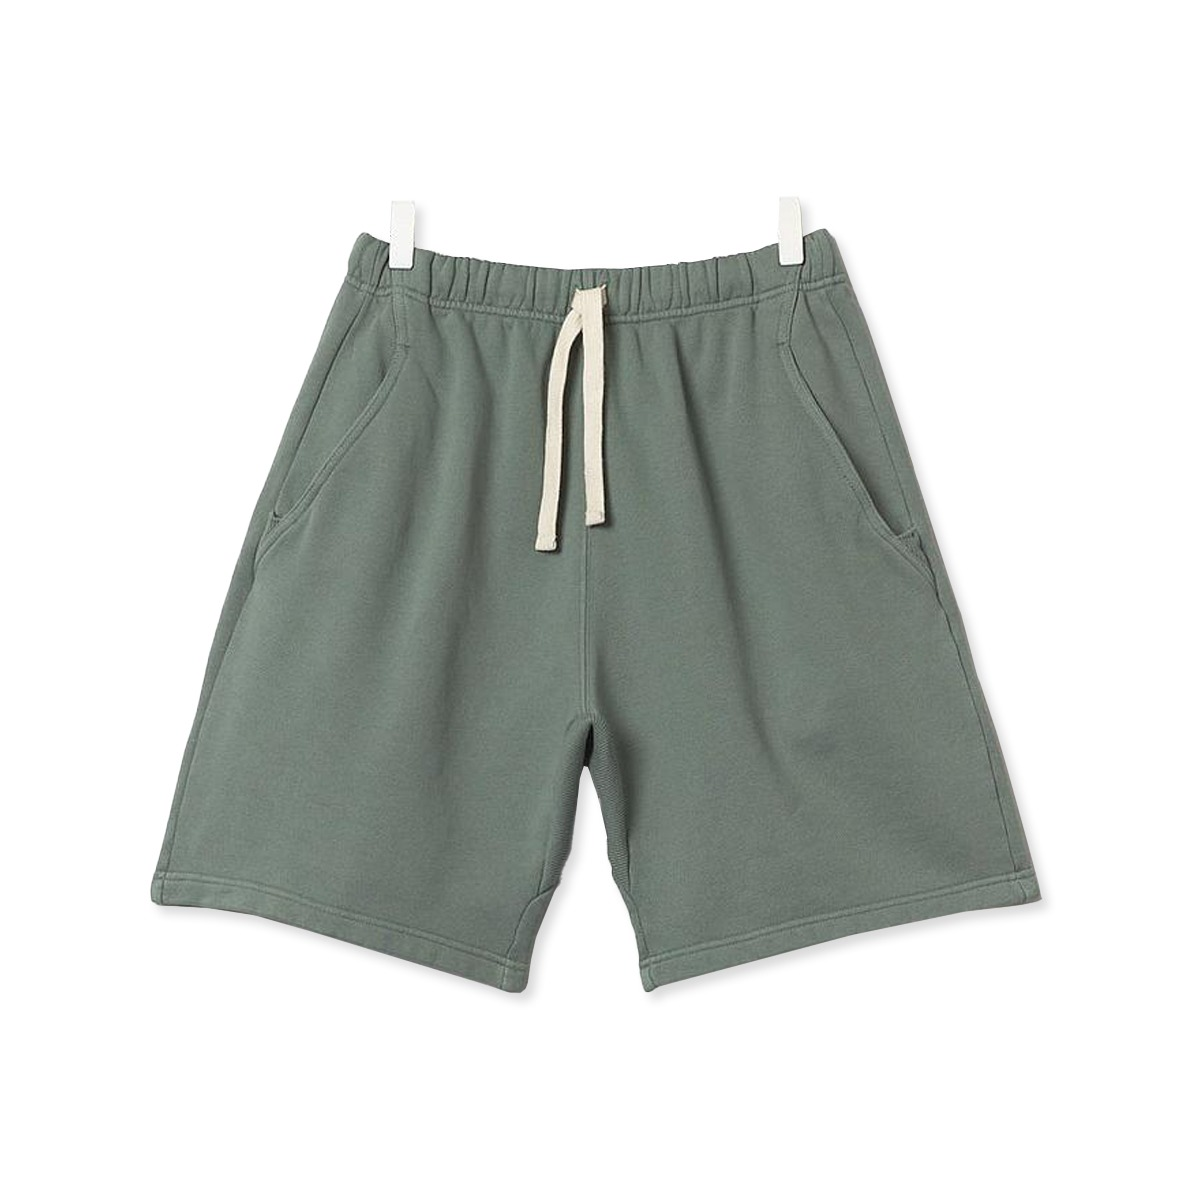 [Merz B. Schwanen] GOOD BASICS MEN'S SWEAT SHORTS 'LIGHT ARMY'